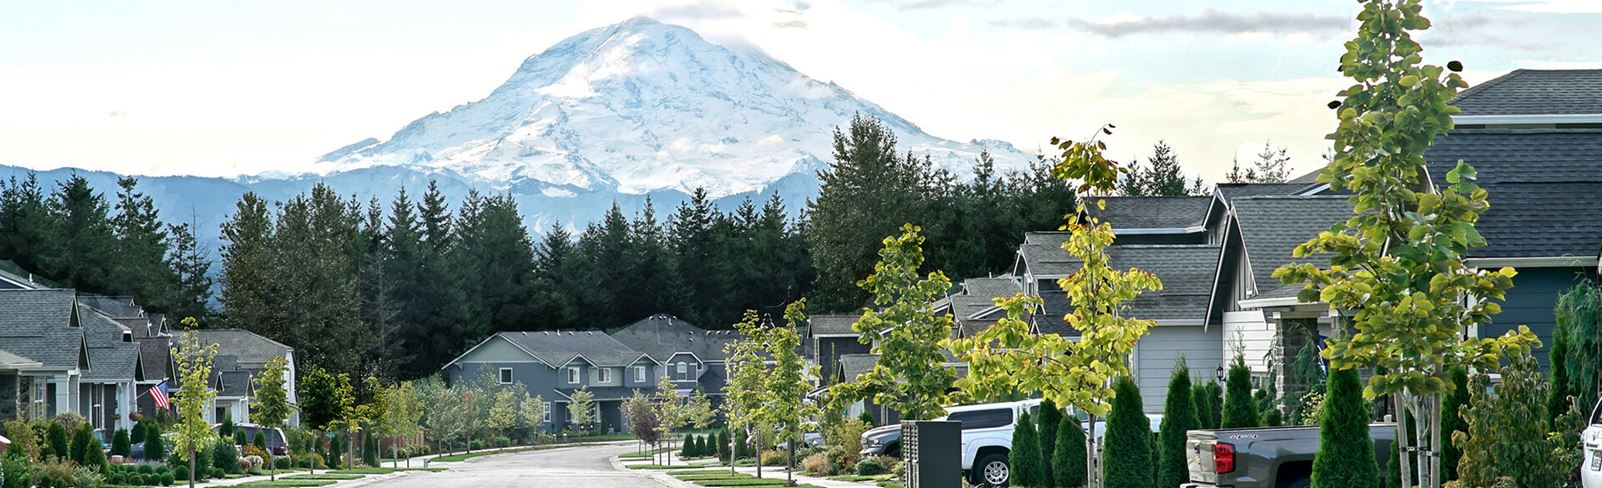 tehaleh-street-scene-with-mount-rainier-in-the-background.jpg